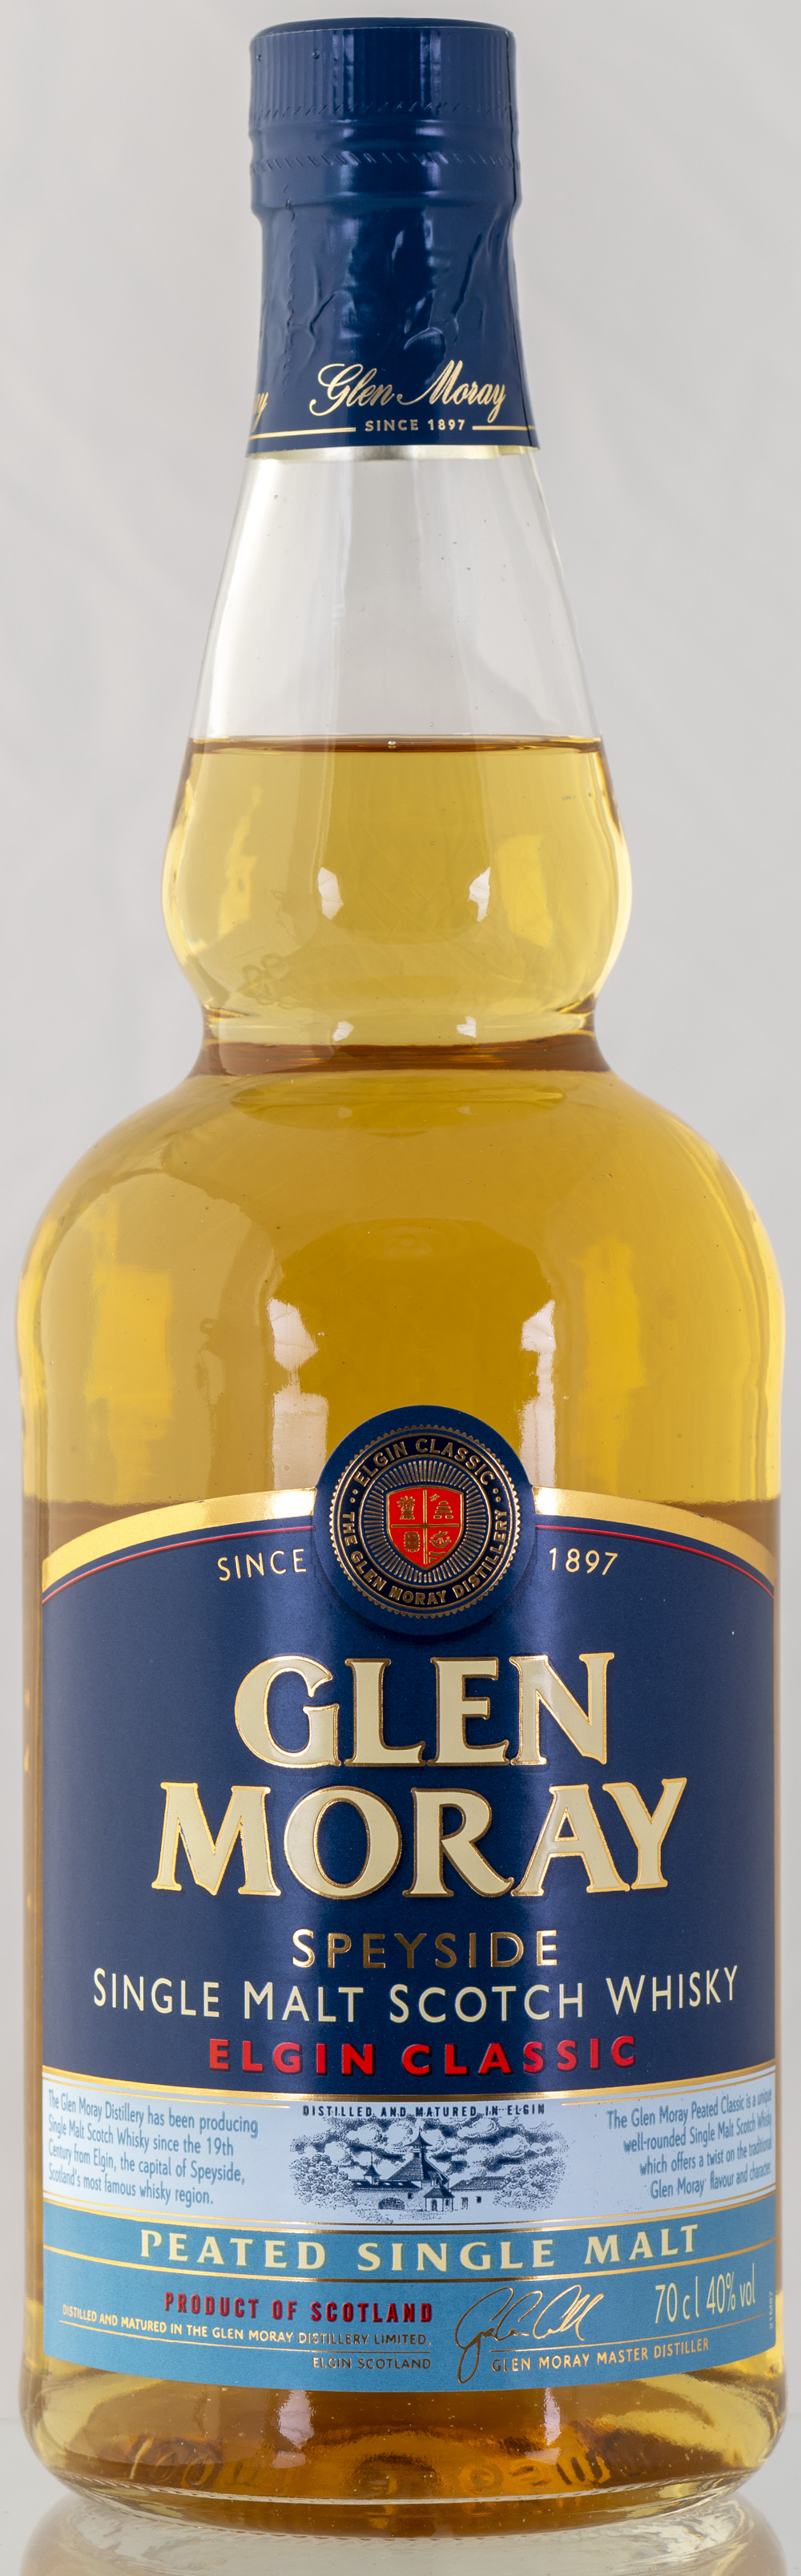 Billede: PHC_2272 - Glen Moray - Elgin Classic Peated - bottle front.jpg